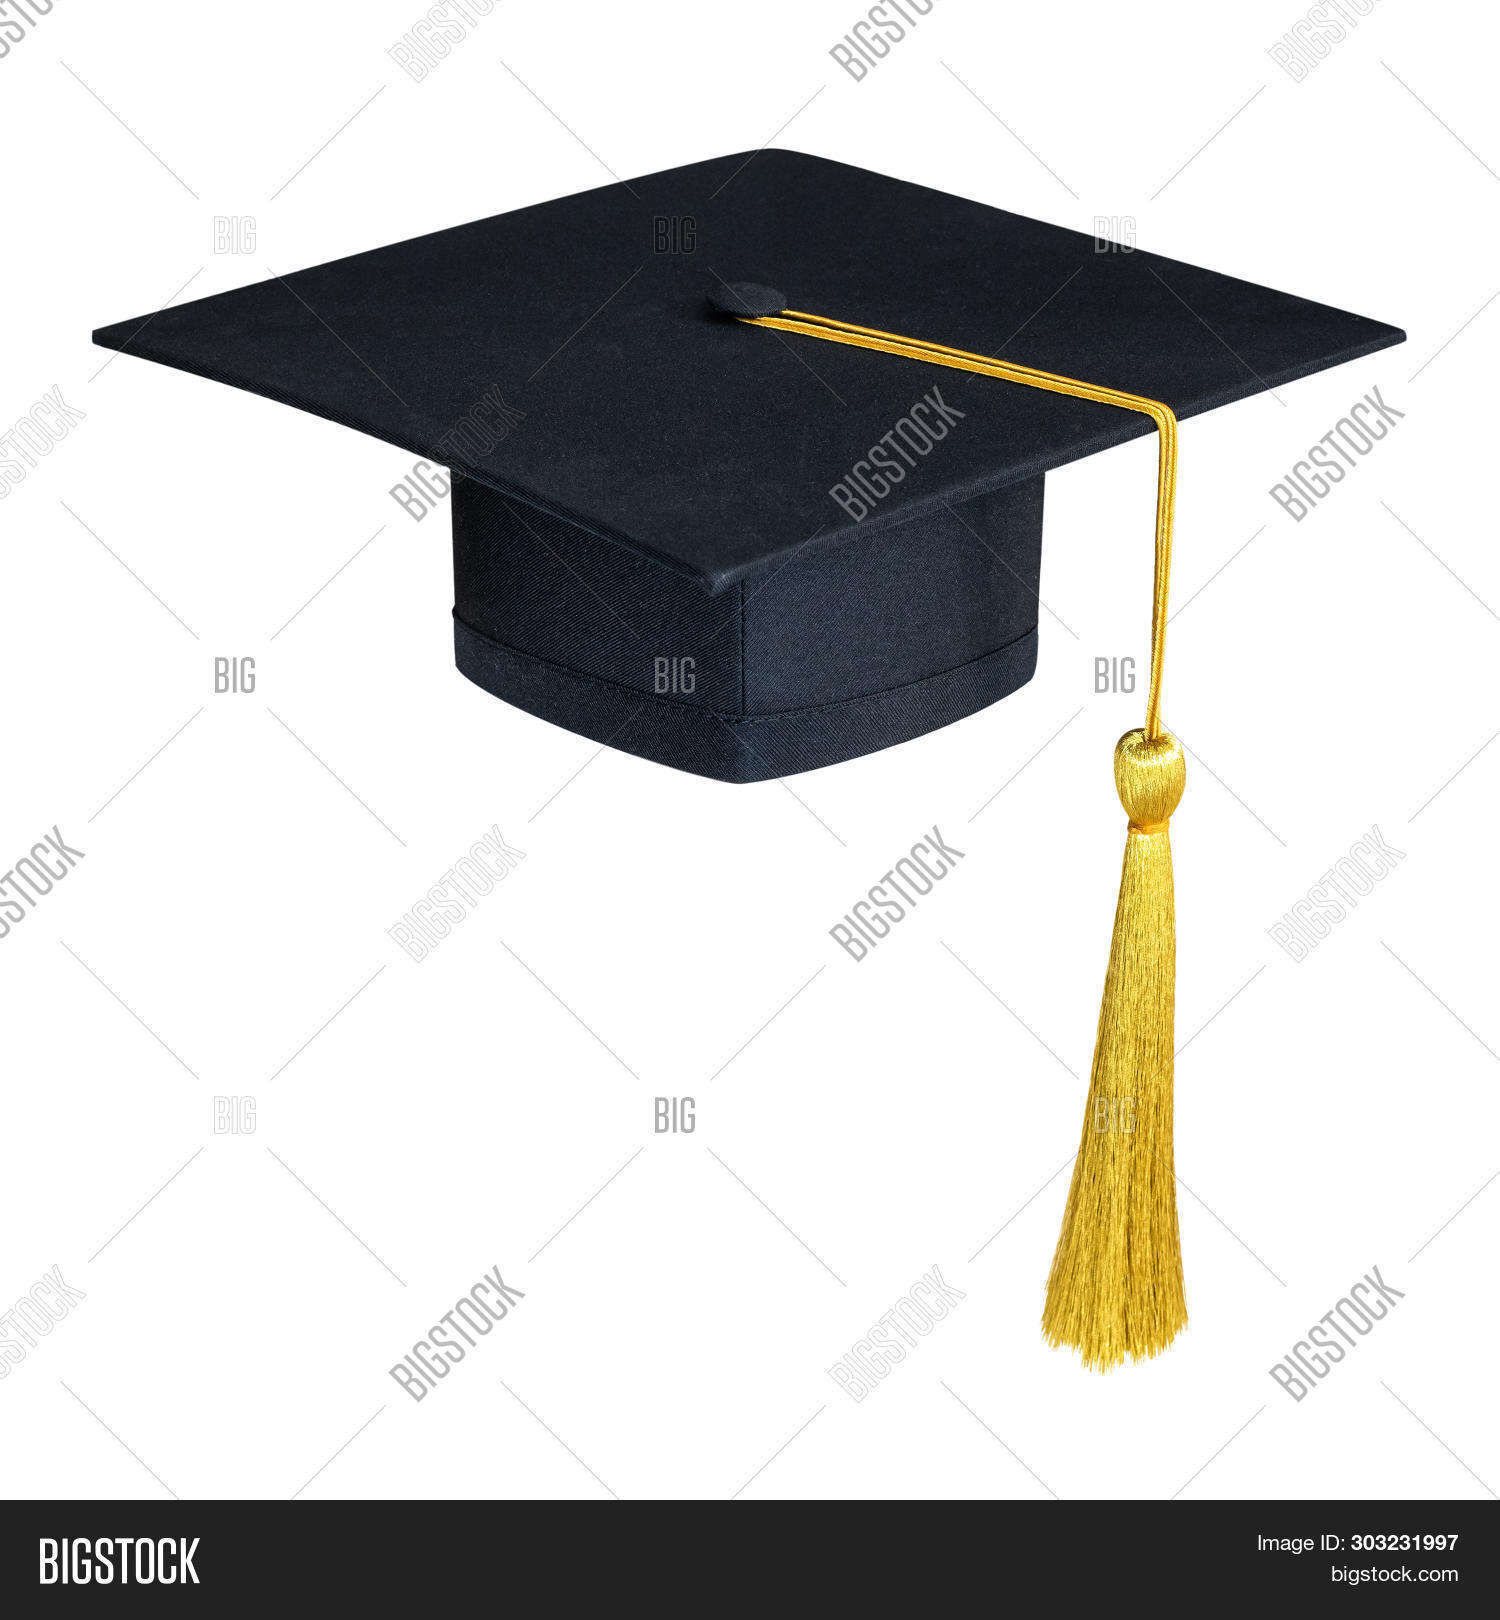 academic,academy,achievement,bachelor,background,black,board,cap,celebration,ceremony,clipping,cloth,college,commencement,congrats,congratulations,degree,diploma,educate,education,educational,expertise,grad,graduate,graduation,hat,high,intelligence,isolated,knowledge,learning,master,mock,mortar,mortarboard,path,scholar,school,sign,student,study,success,symbol,tassel,template,uniform,university,up,white,wisdom